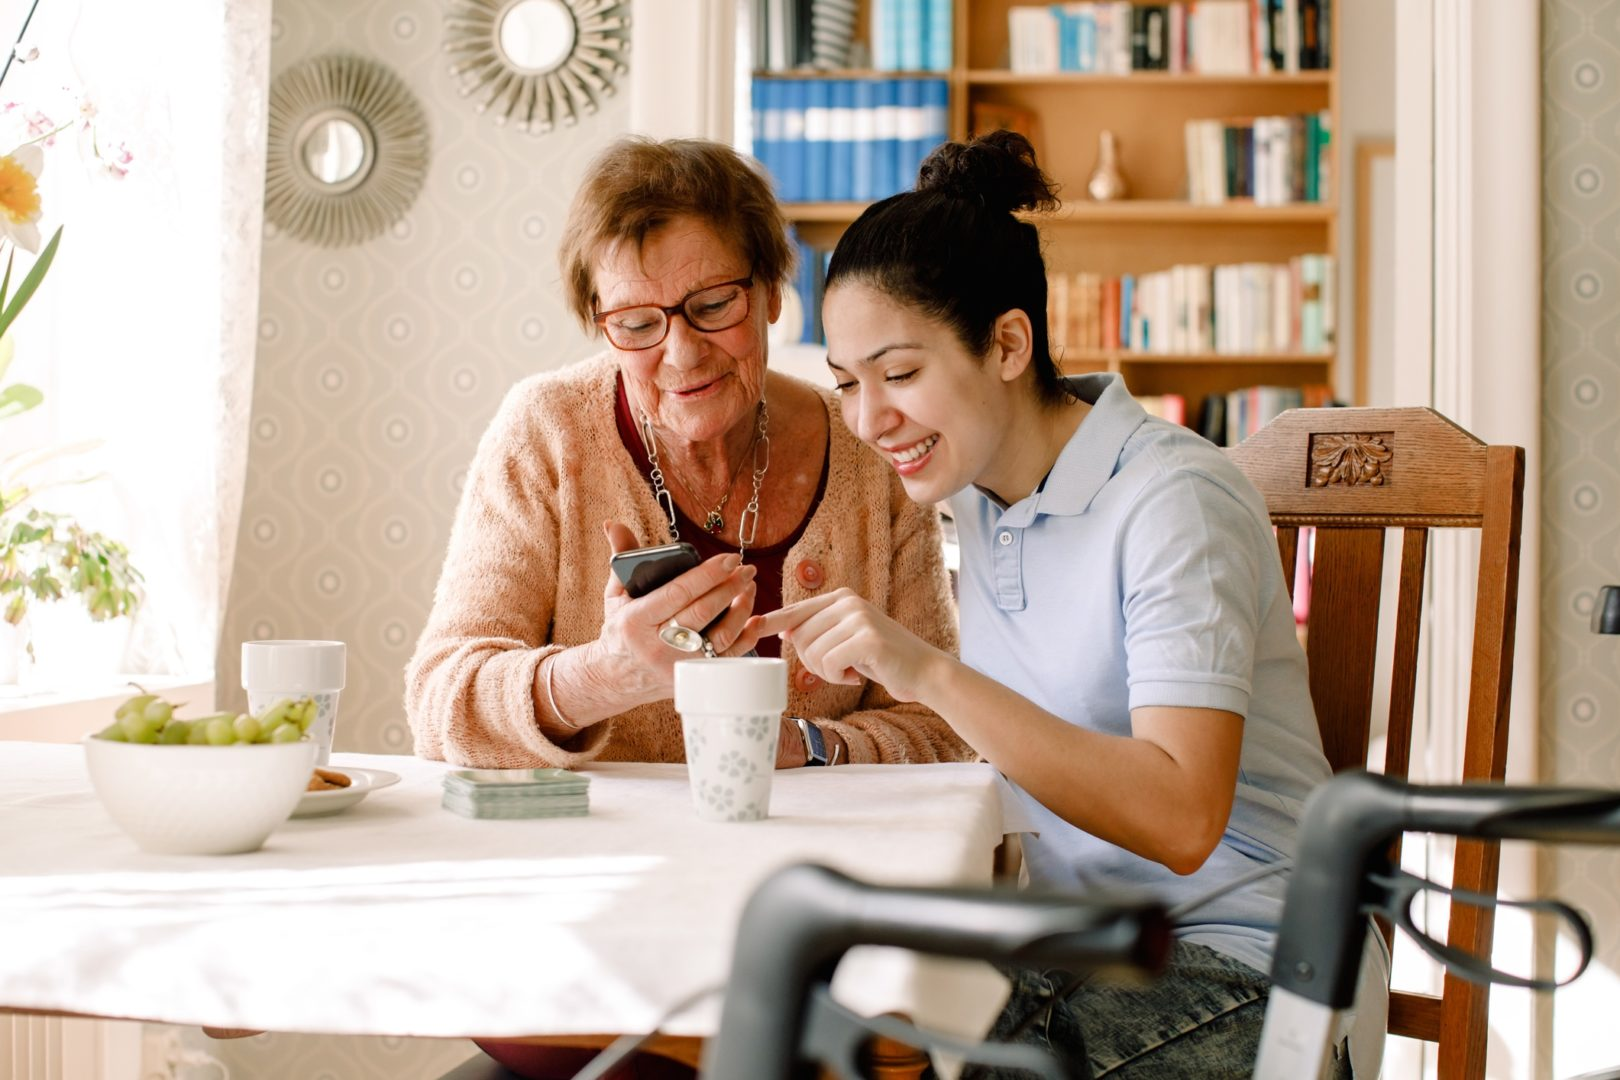 Live-in senior care is different than live-out senior care